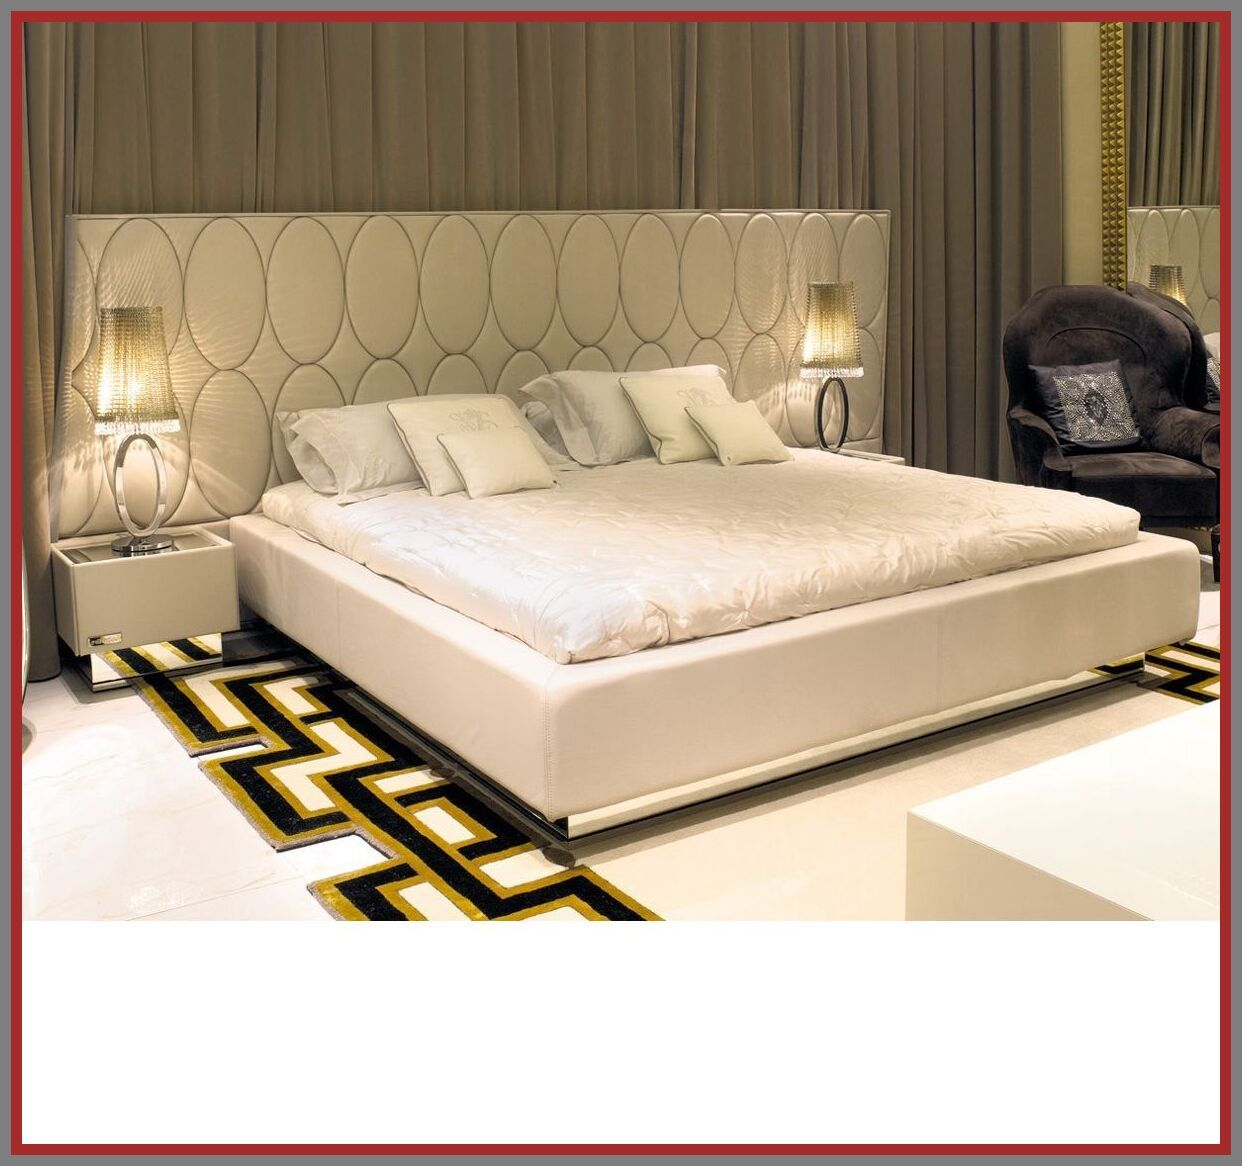 82 Reference Of Hotel Style Bedroom Ideas Uk In 2020 High Quality Bedroom Furniture Quality Bedroom Furniture Luxury Bedroom Furniture